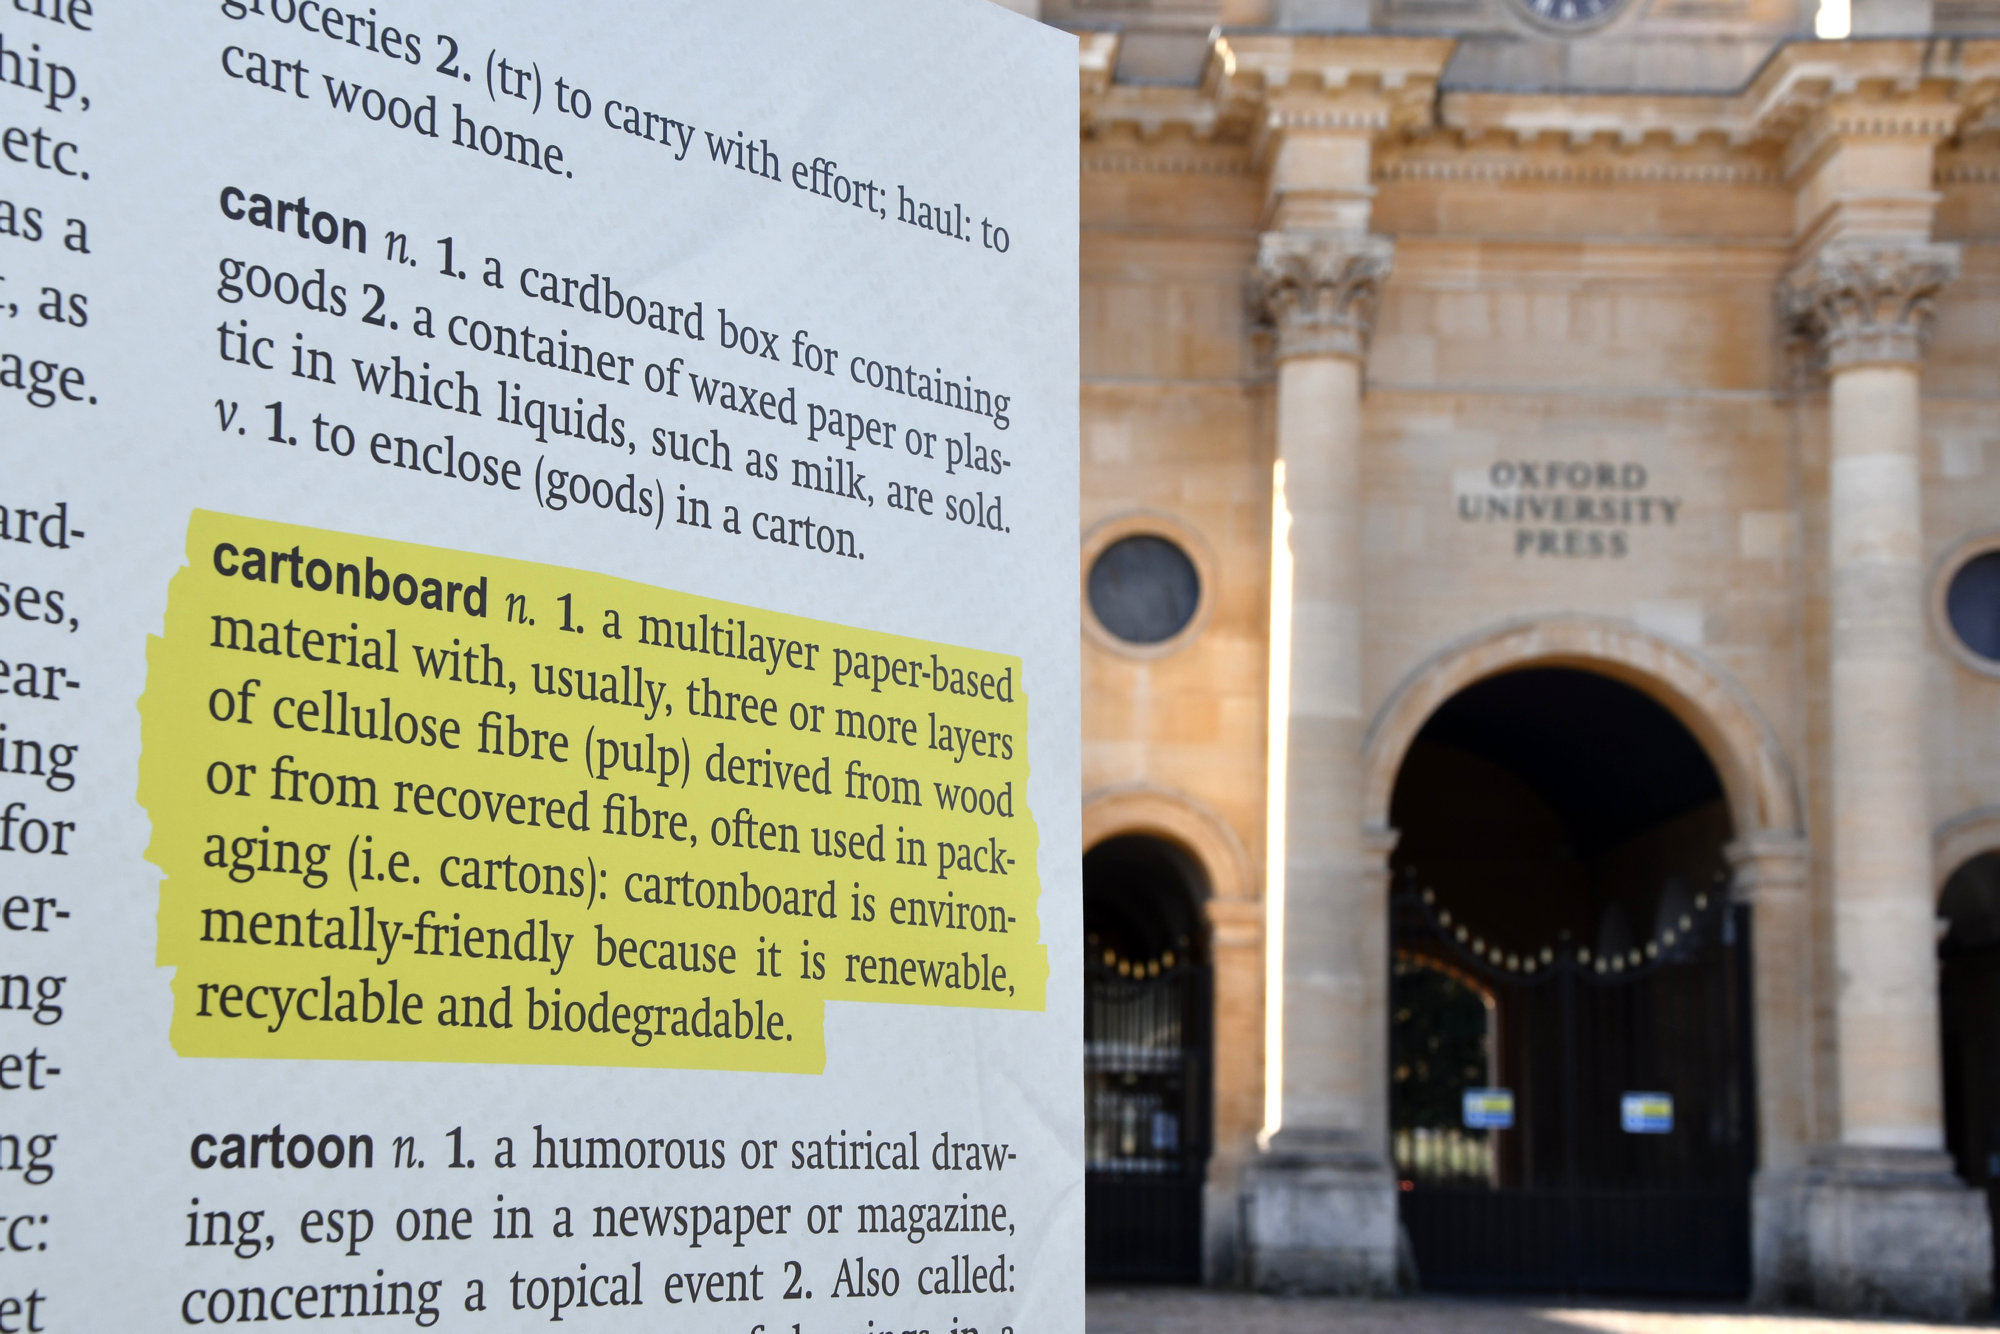 Have a word! Students gather to support campaign to get 'cartonboard' into the Oxford English Dictionary